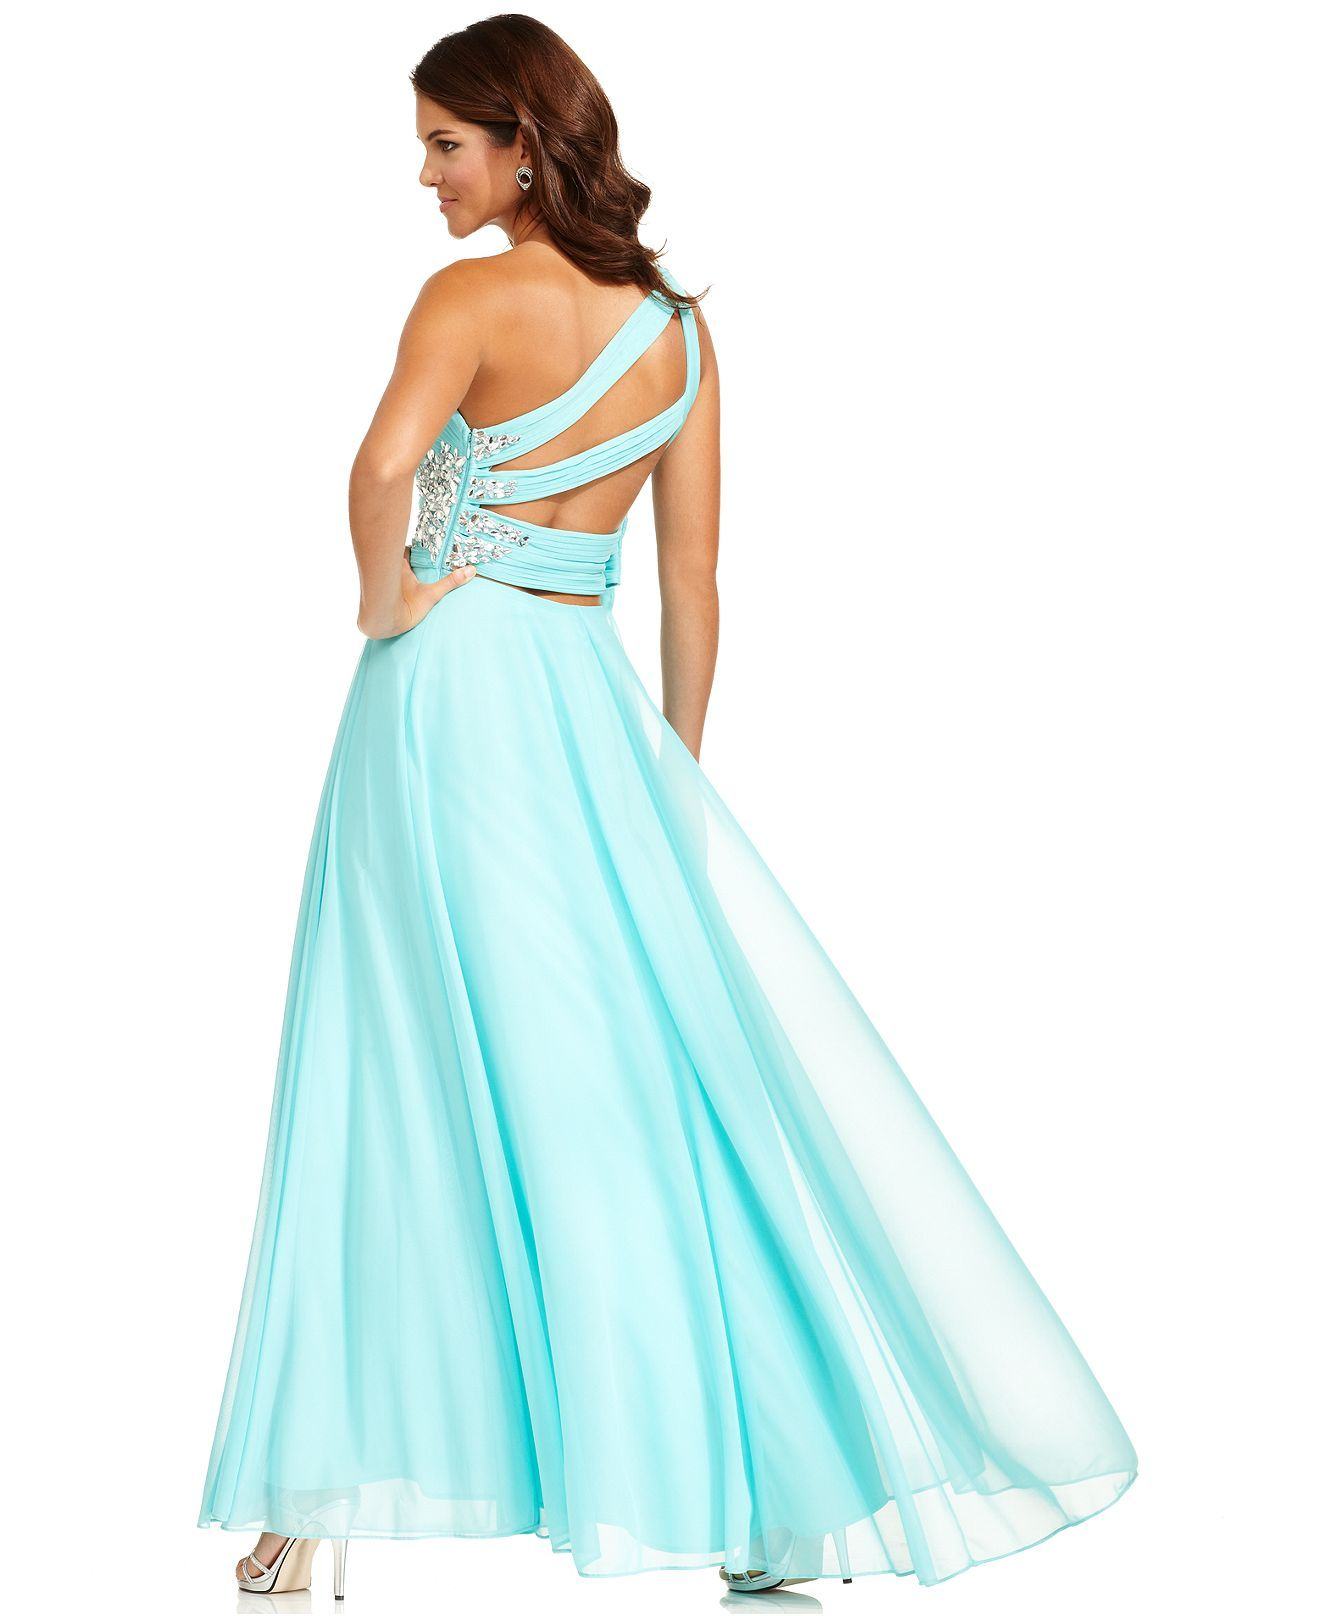 Xscape Dress, Sleeveless One-Shoulder Beaded Gown ...